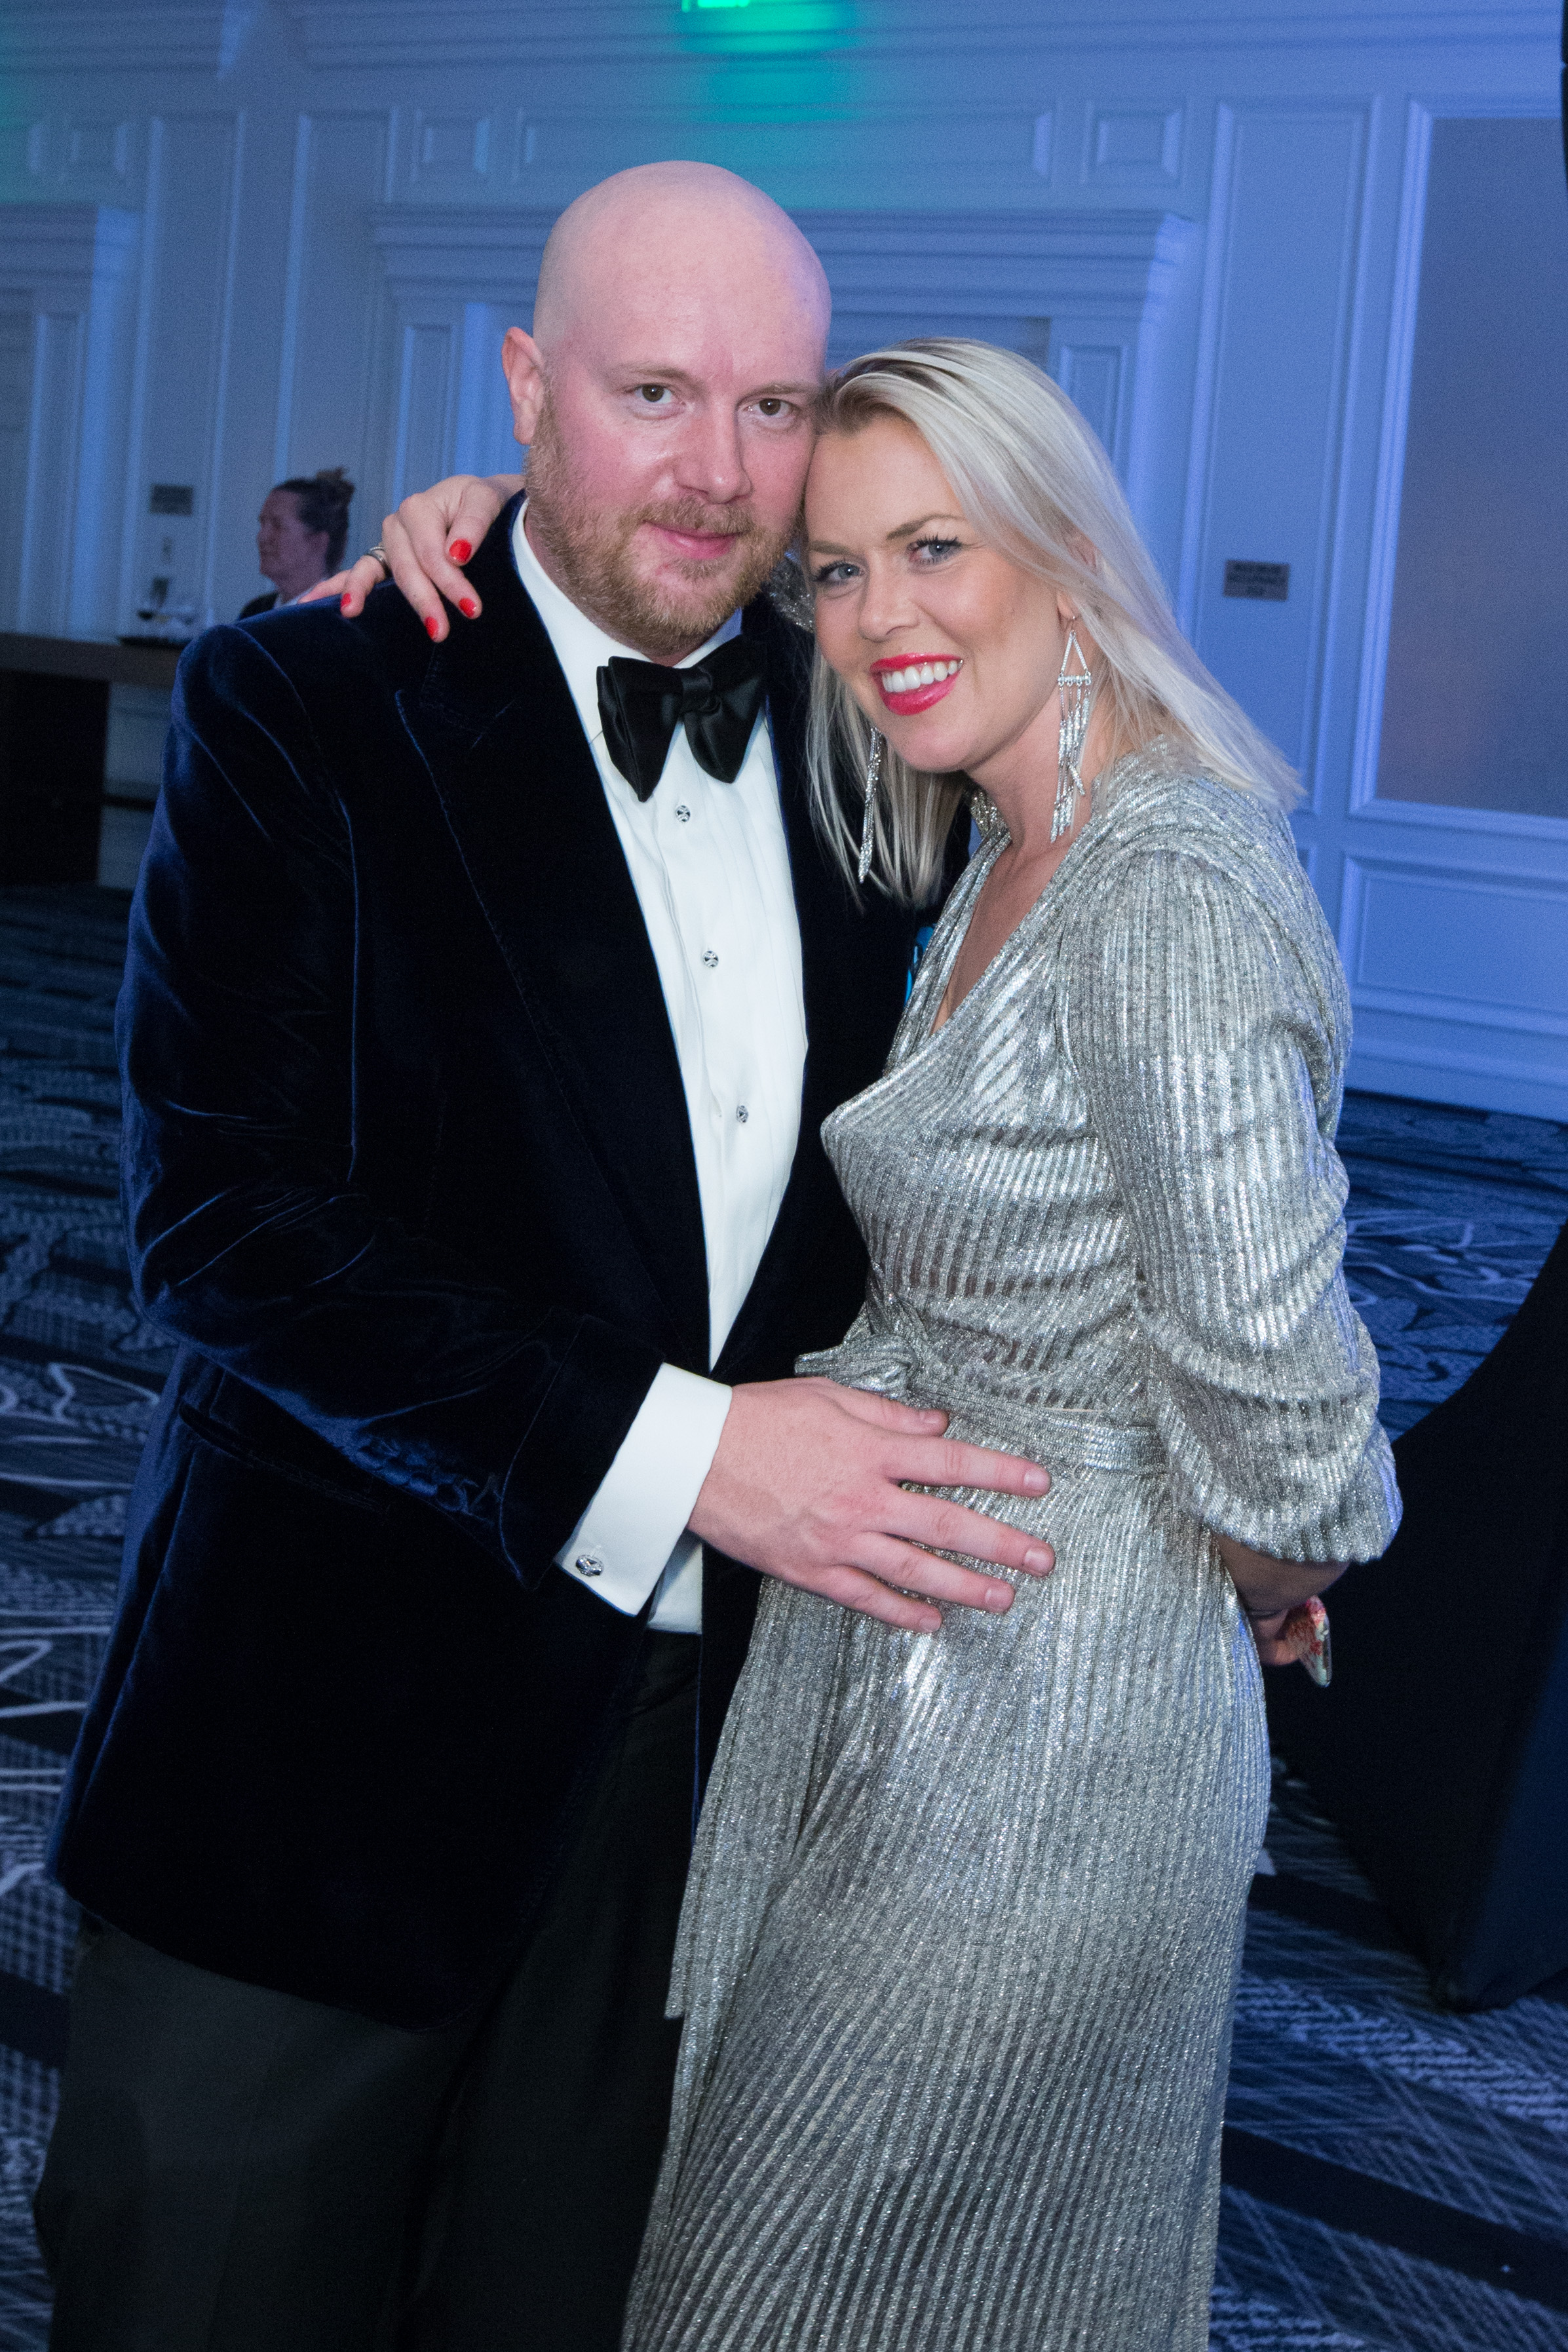 Musical Performer DJ Eric Prydz with his wife Sofie (Photo by Drew Altizer)